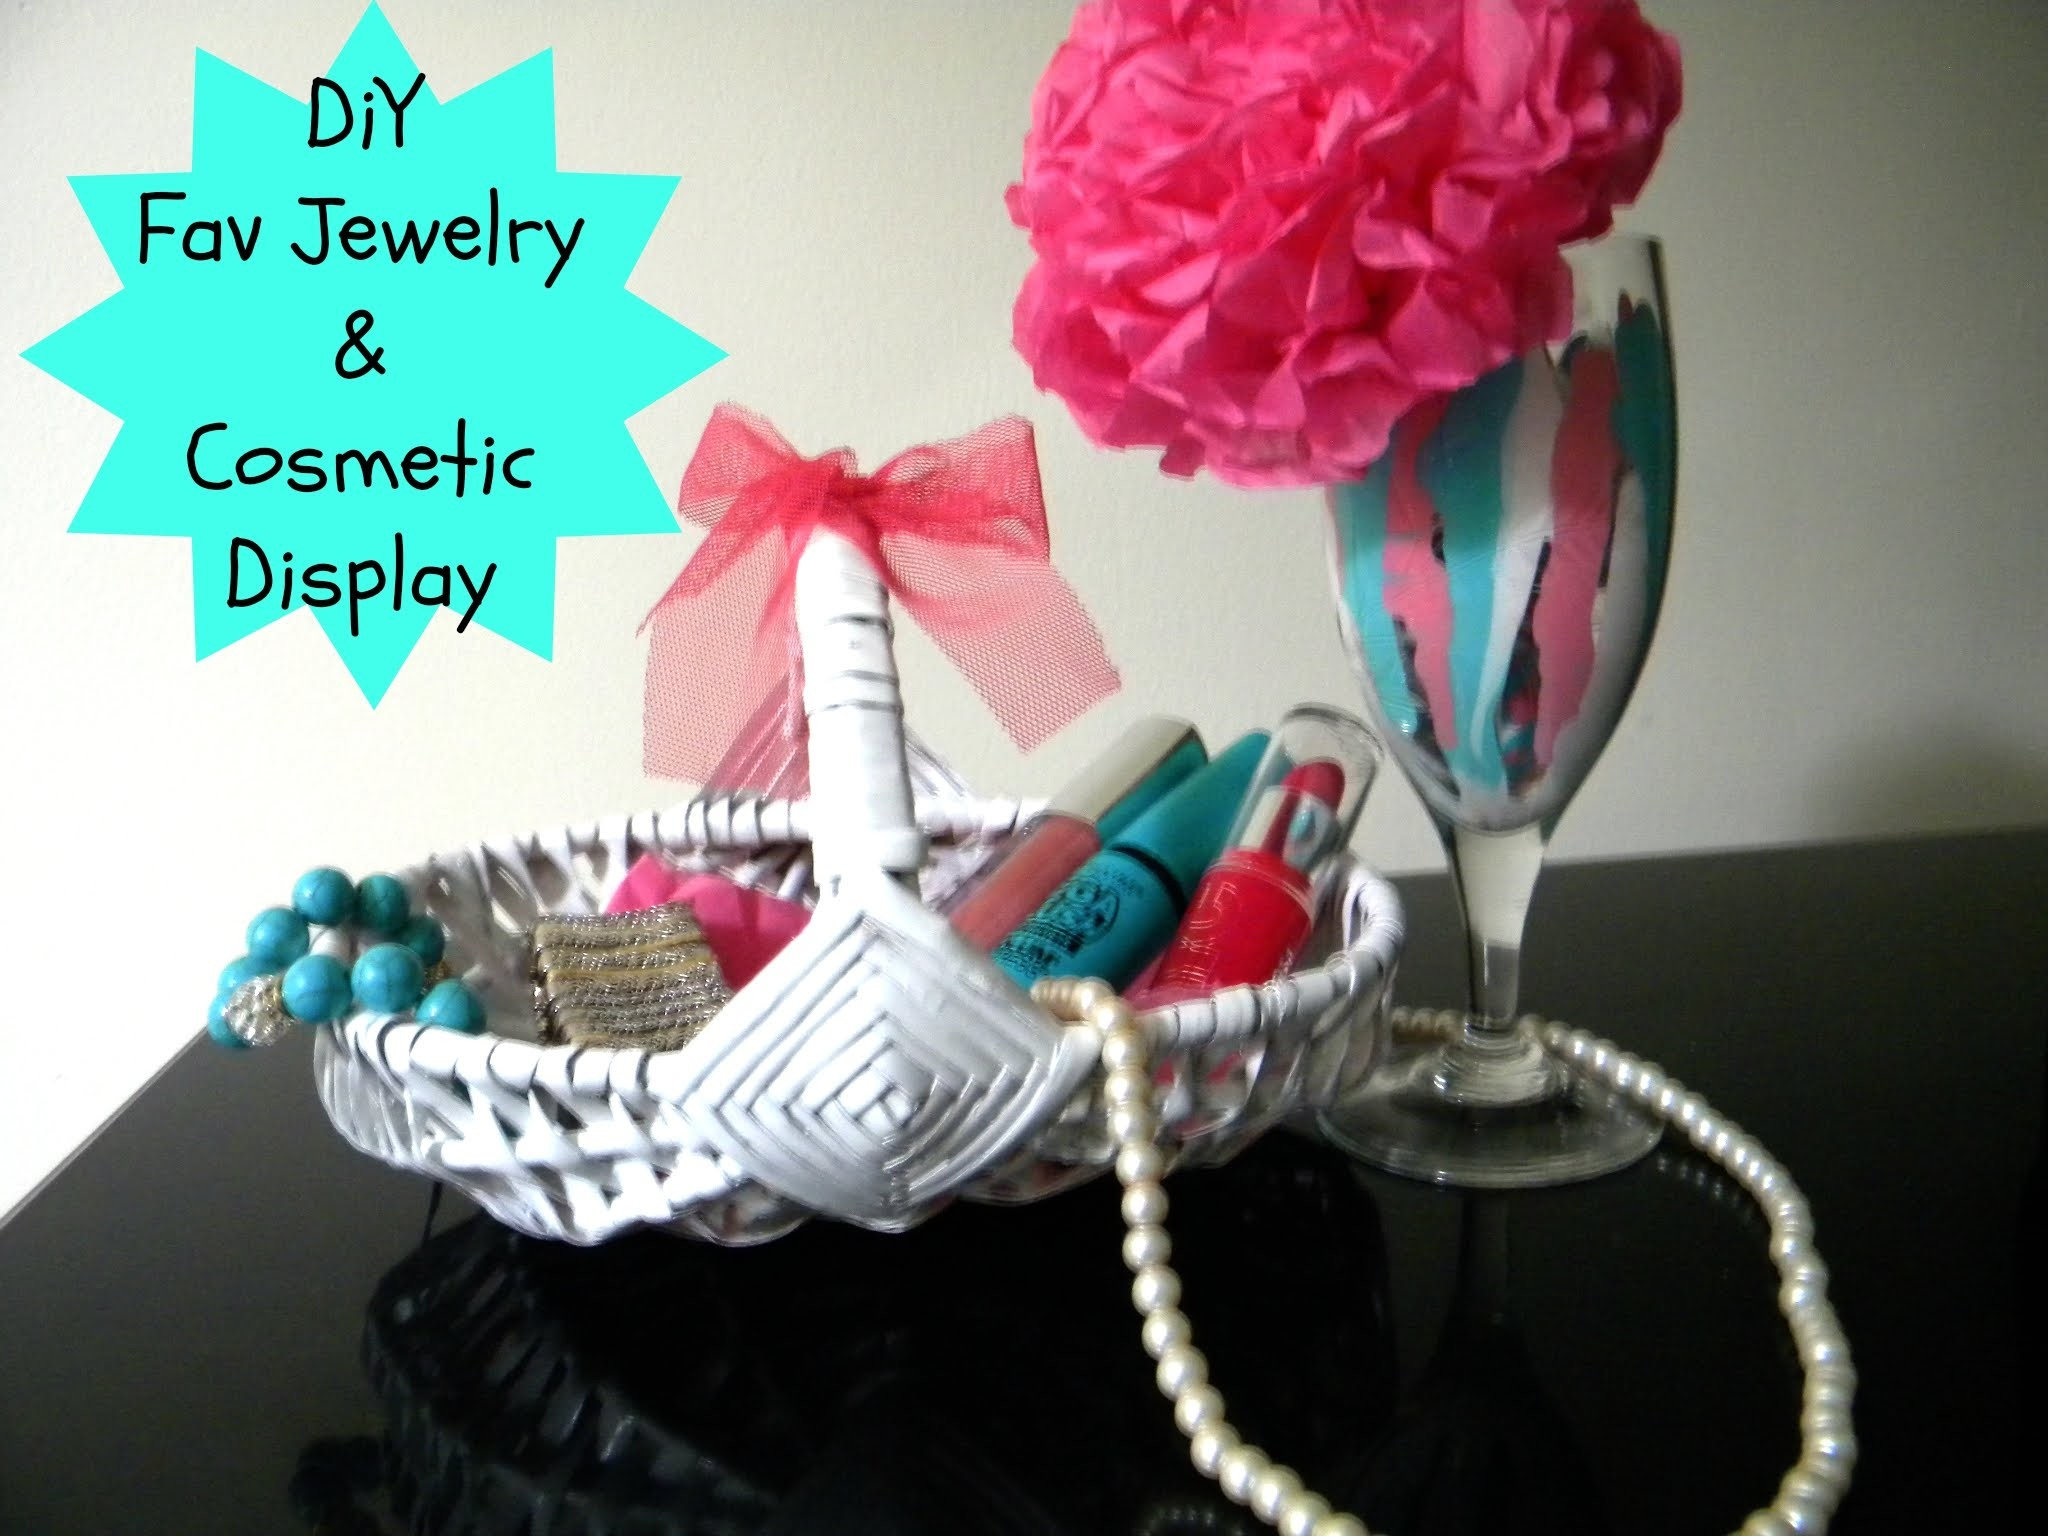 DIY Fav Jewelry & Cosmetics Display. Wine glass decor